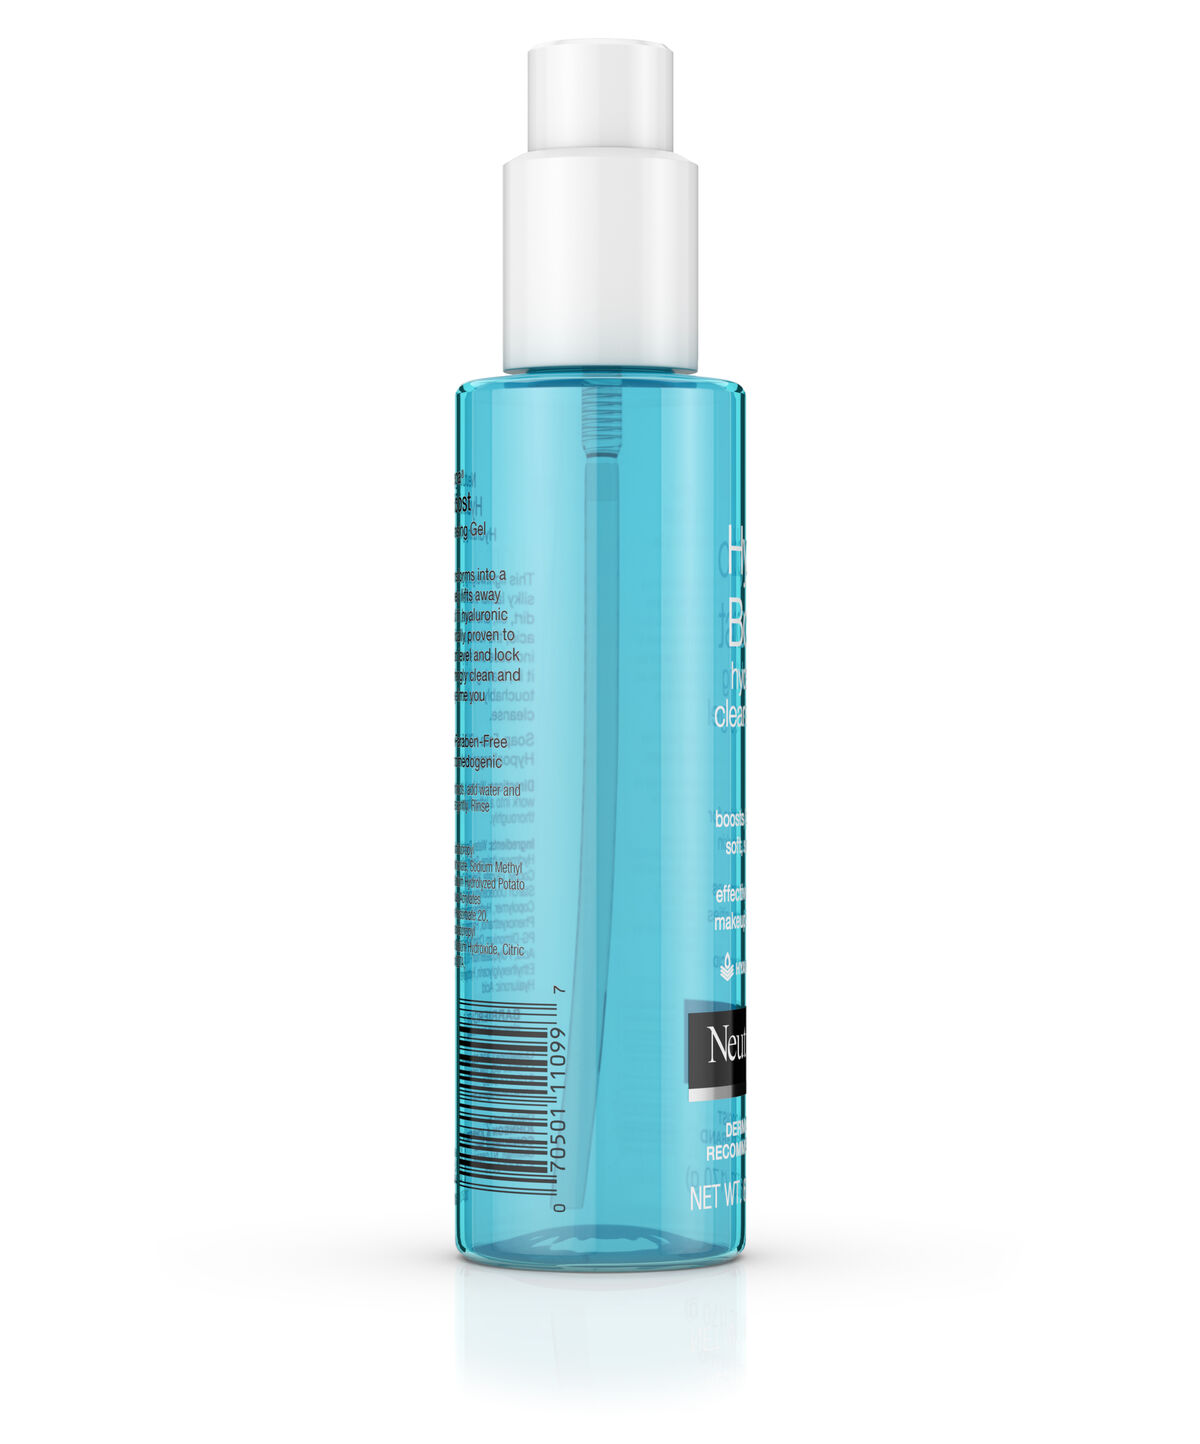 hydro boost hydrating cleansing gel review